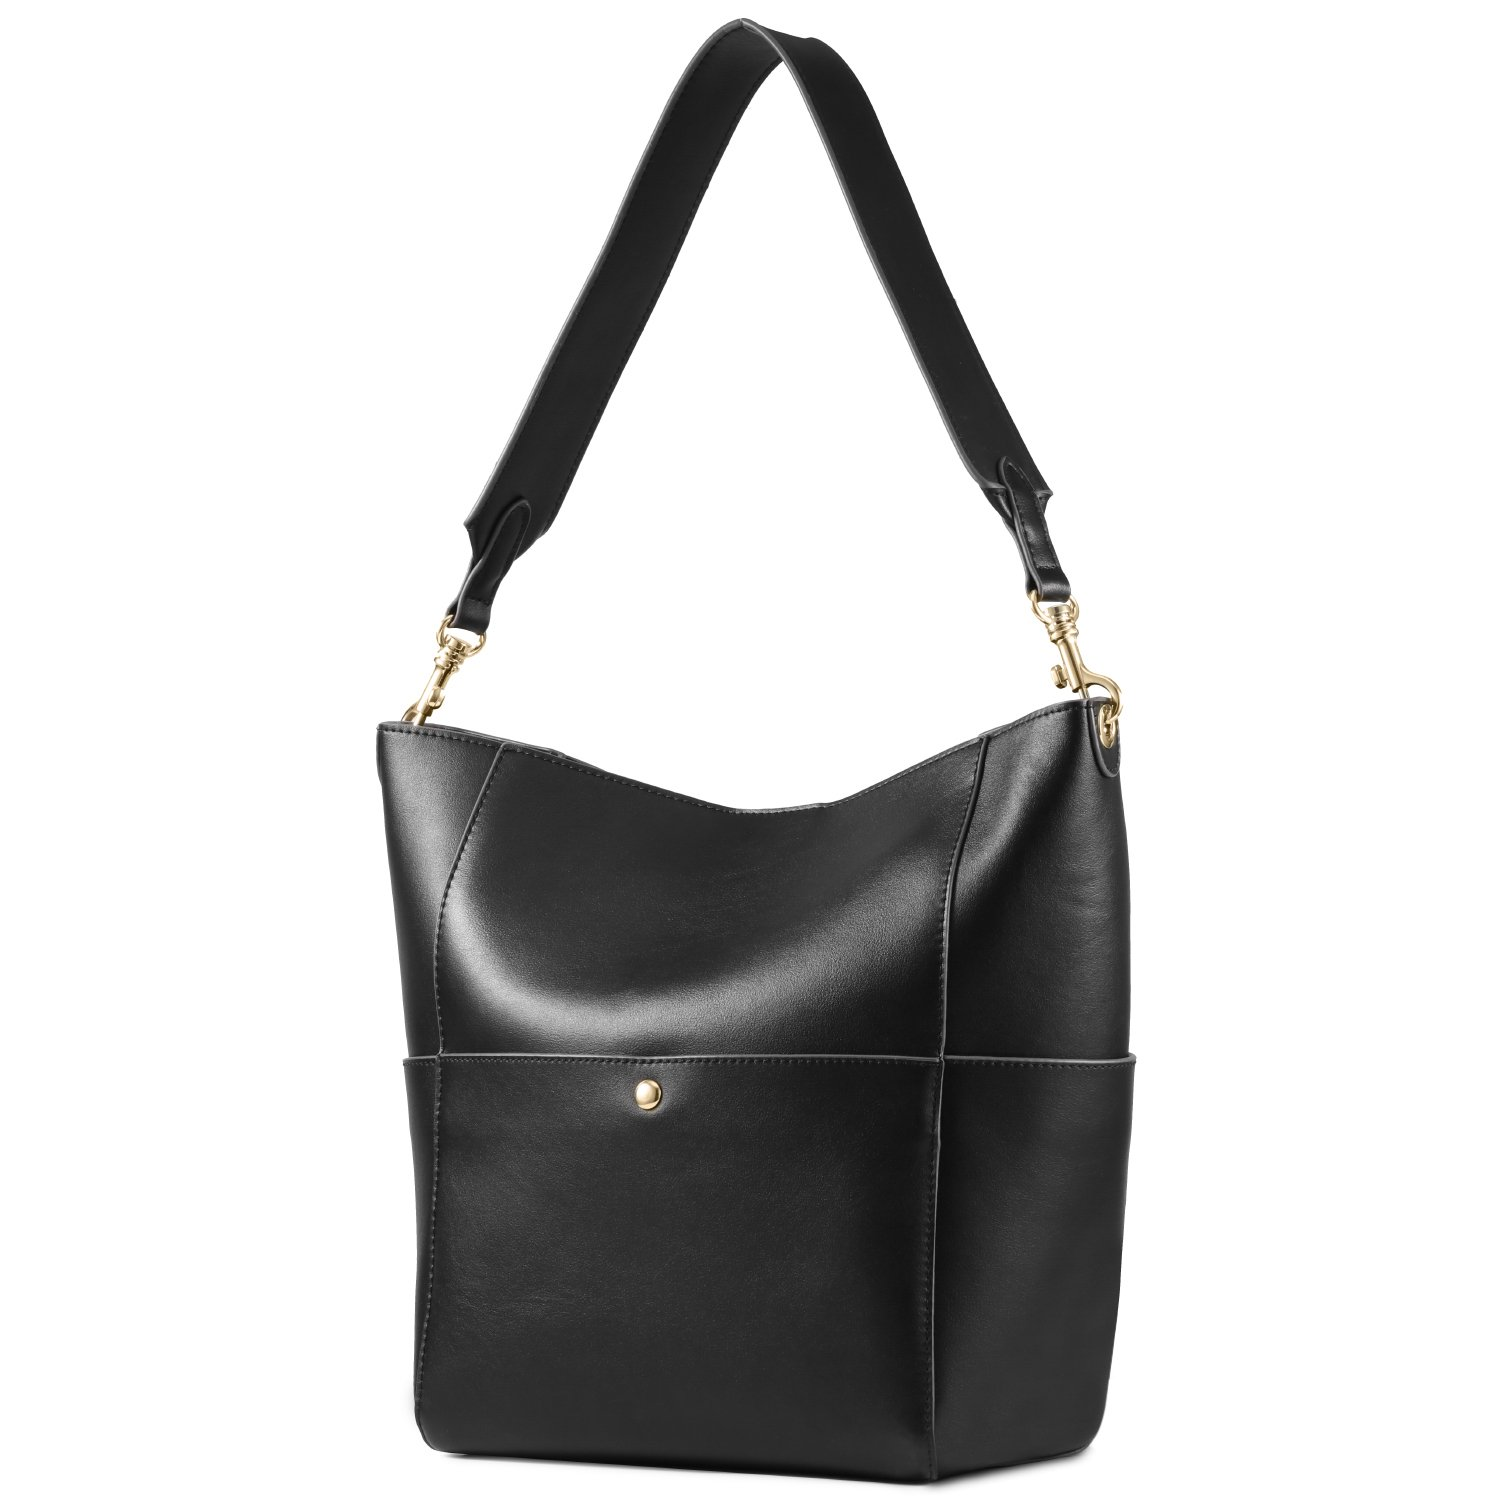 53d60d106461 Amazon.com  Kattee Women s Cowhide Leather Tote Shoulder Bag Hobo Handbag  Shoulder Bucket Bag (Black)  Shoes